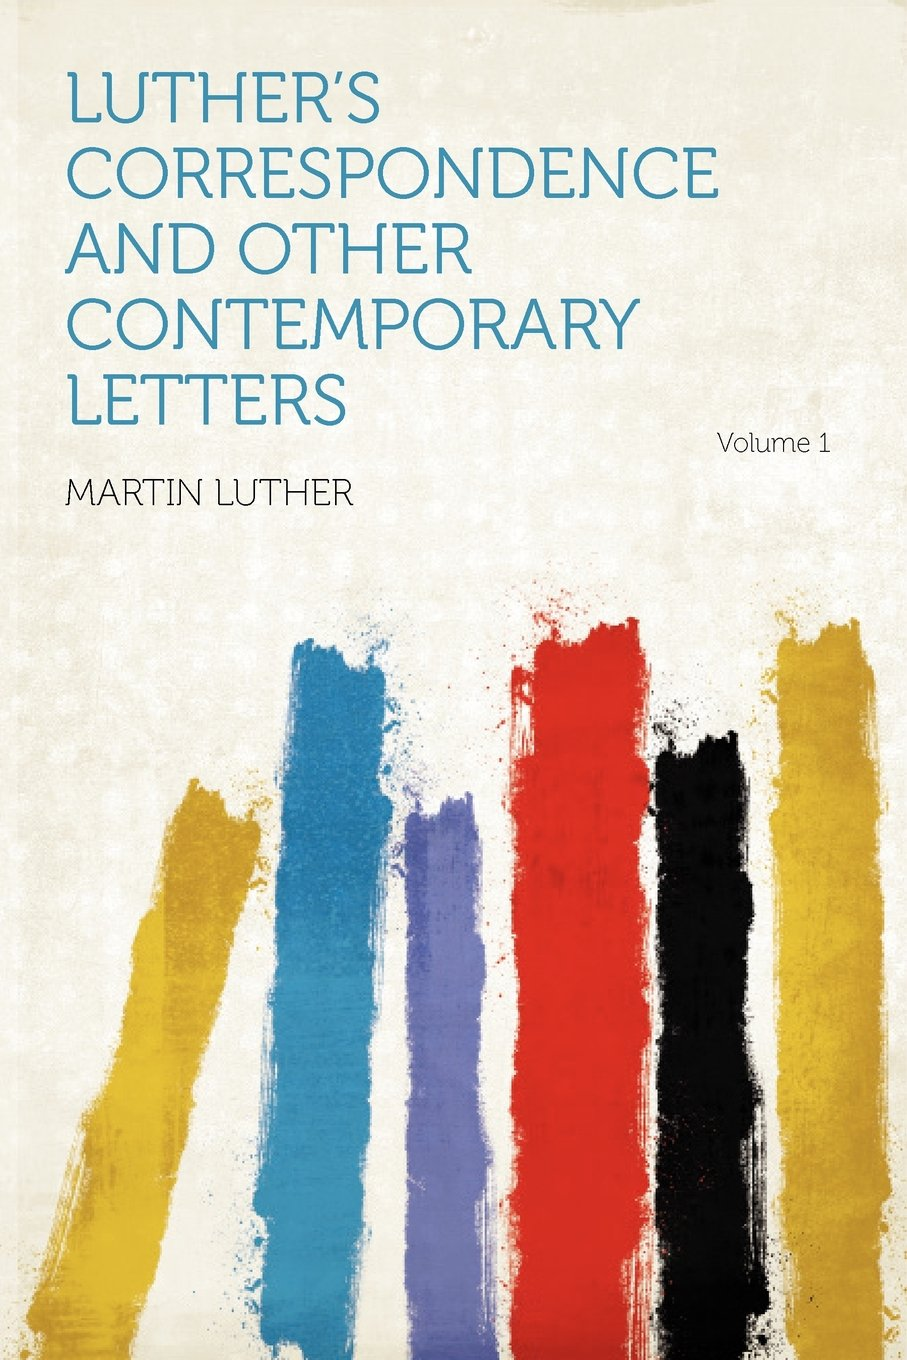 Luther's Correspondence and Other Contemporary Letters Volume 1 pdf